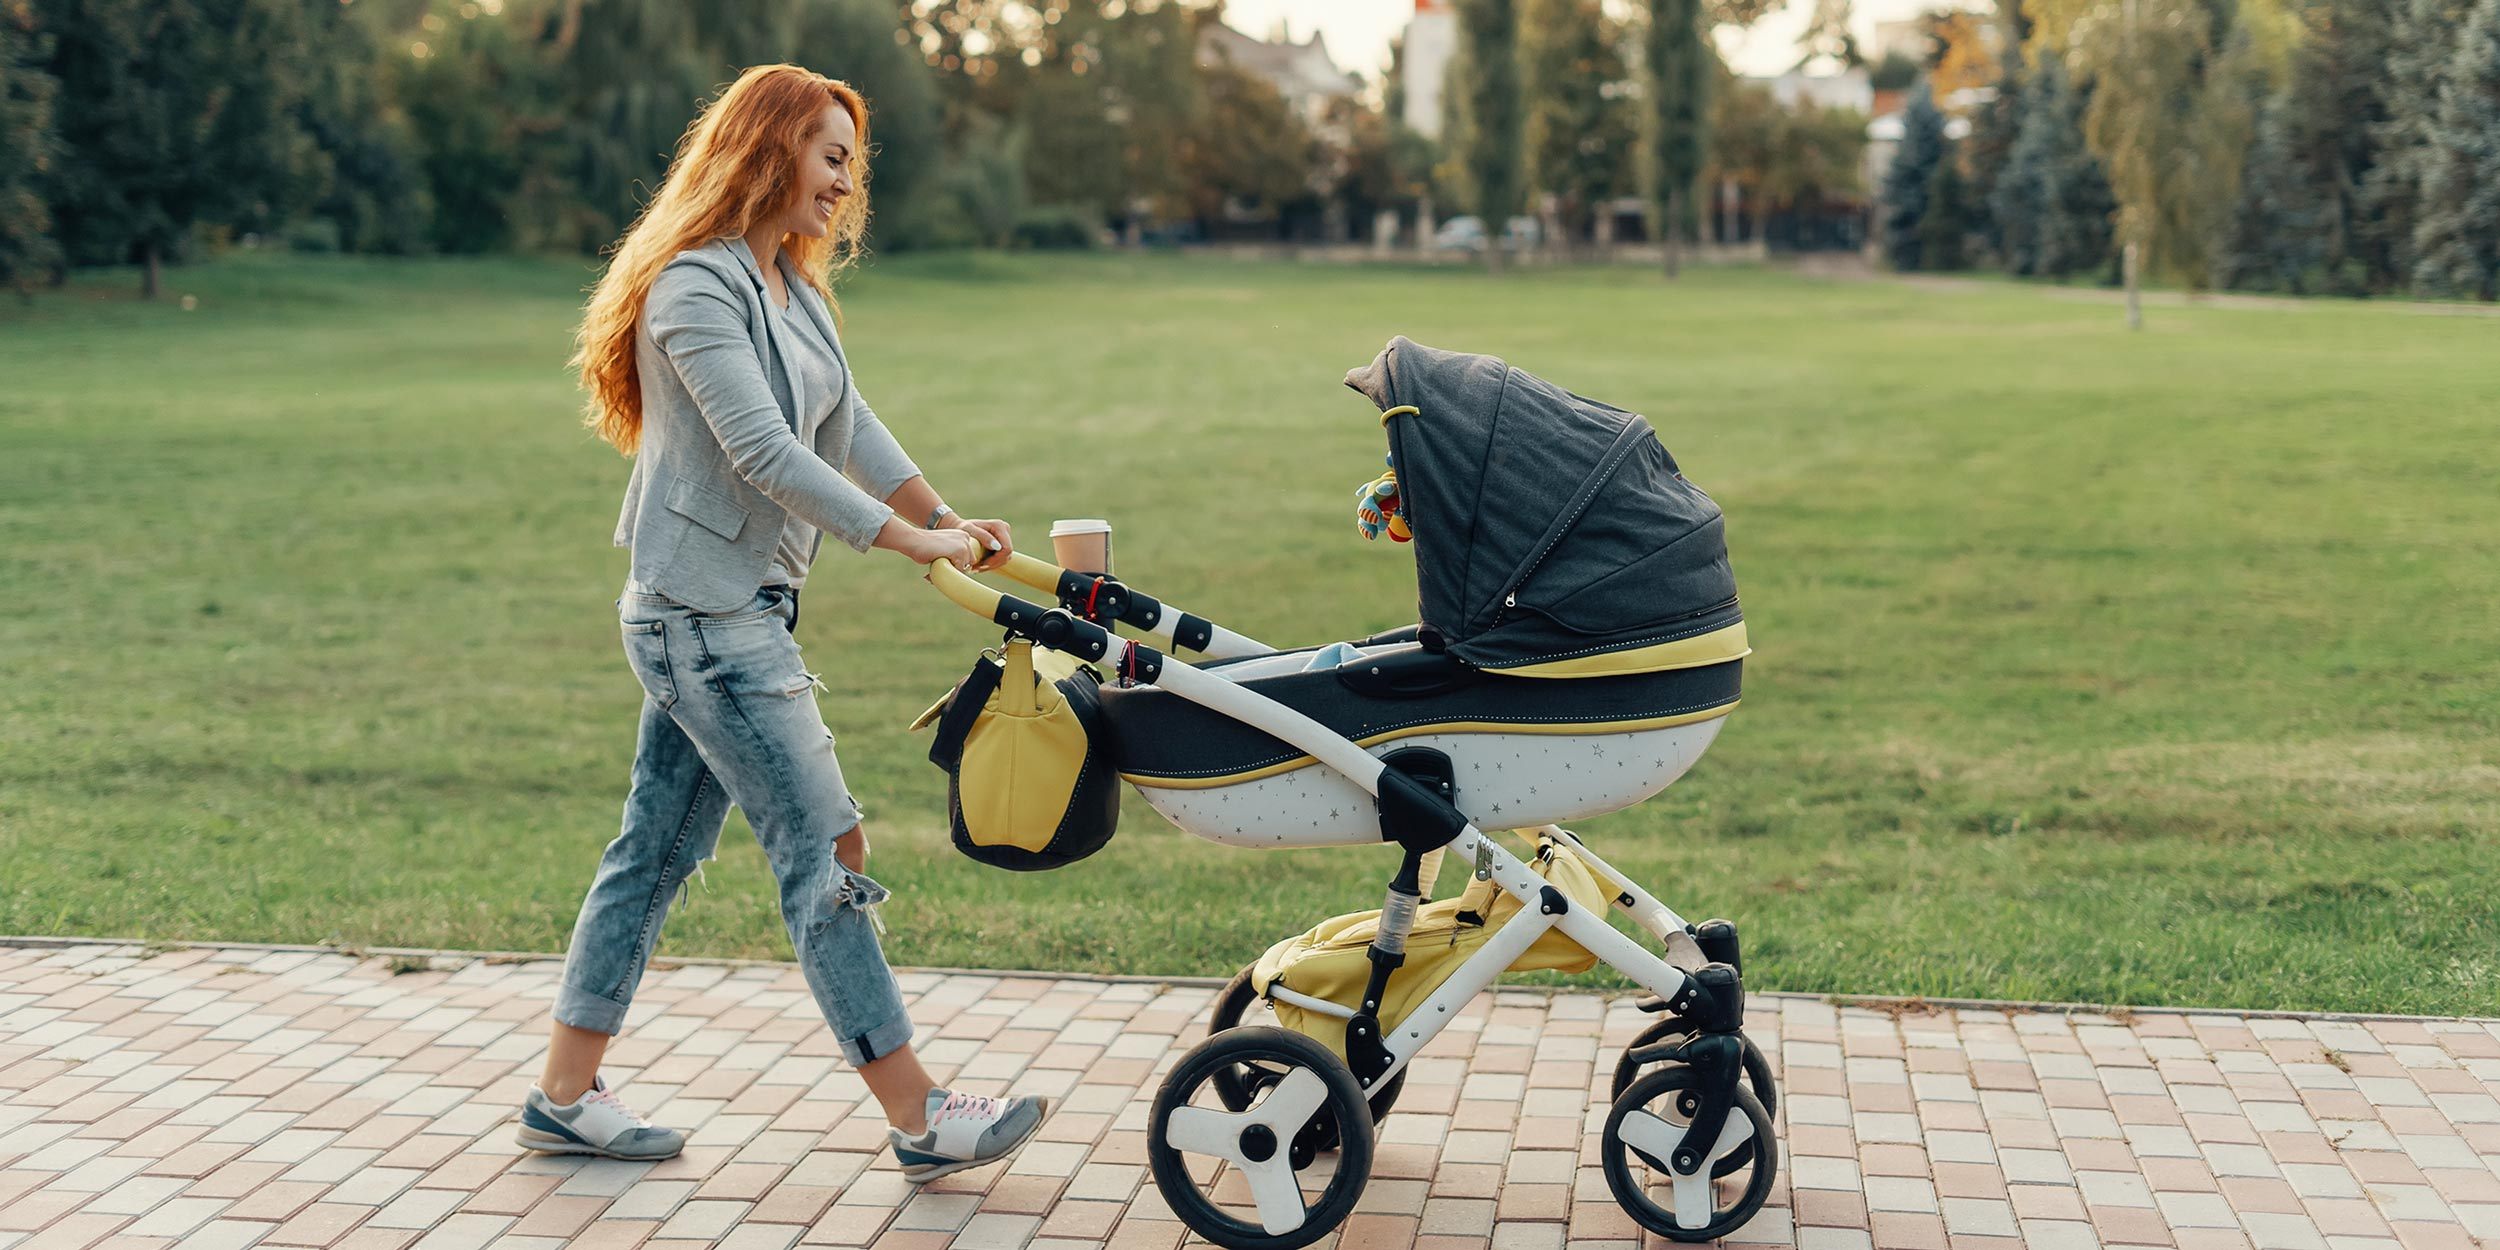 12 best strollers of 2021: Chicco, Nuna, Doona and more